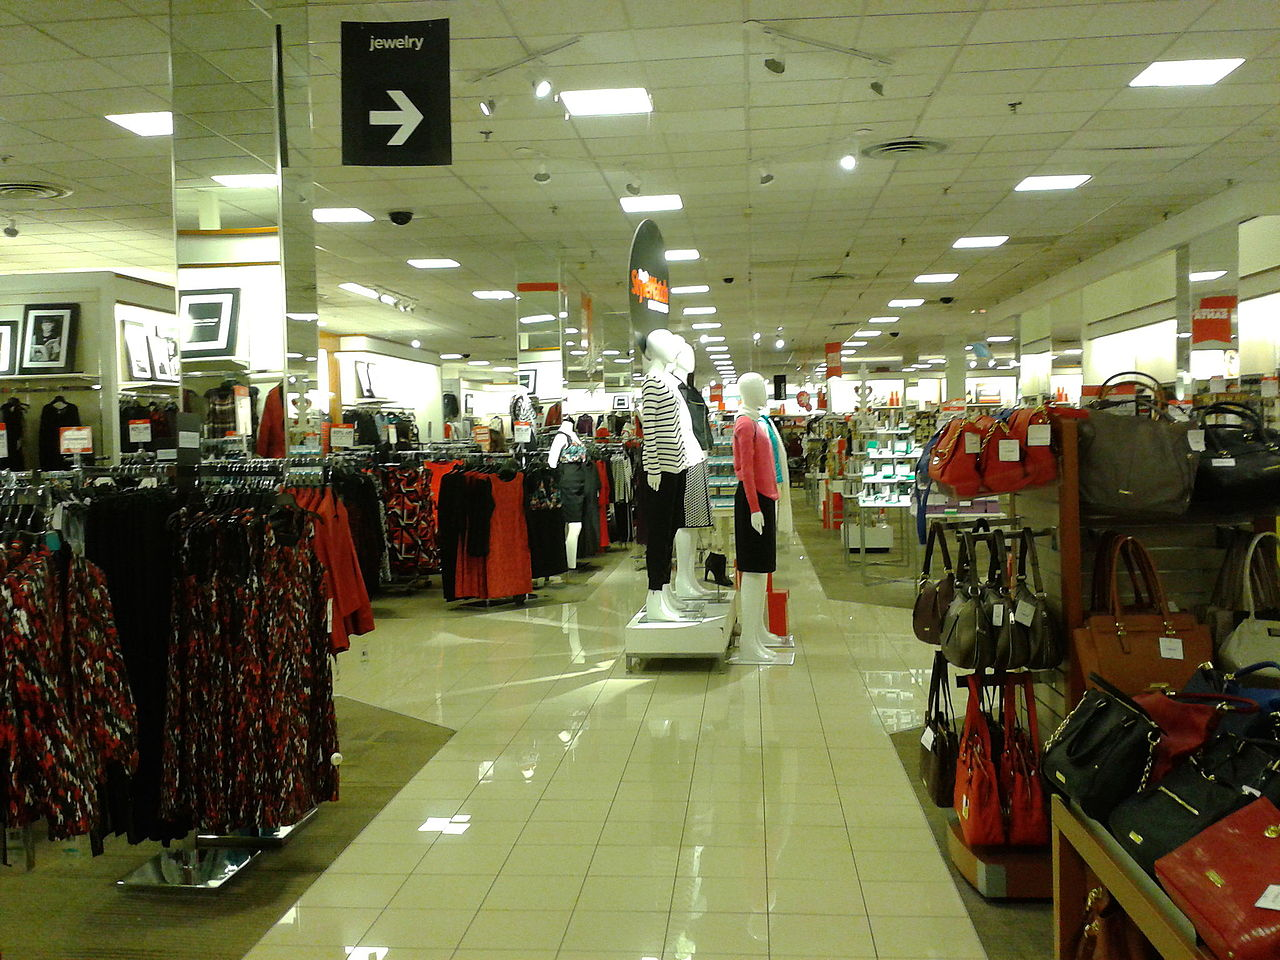 jc penney filing possible bankruptcy